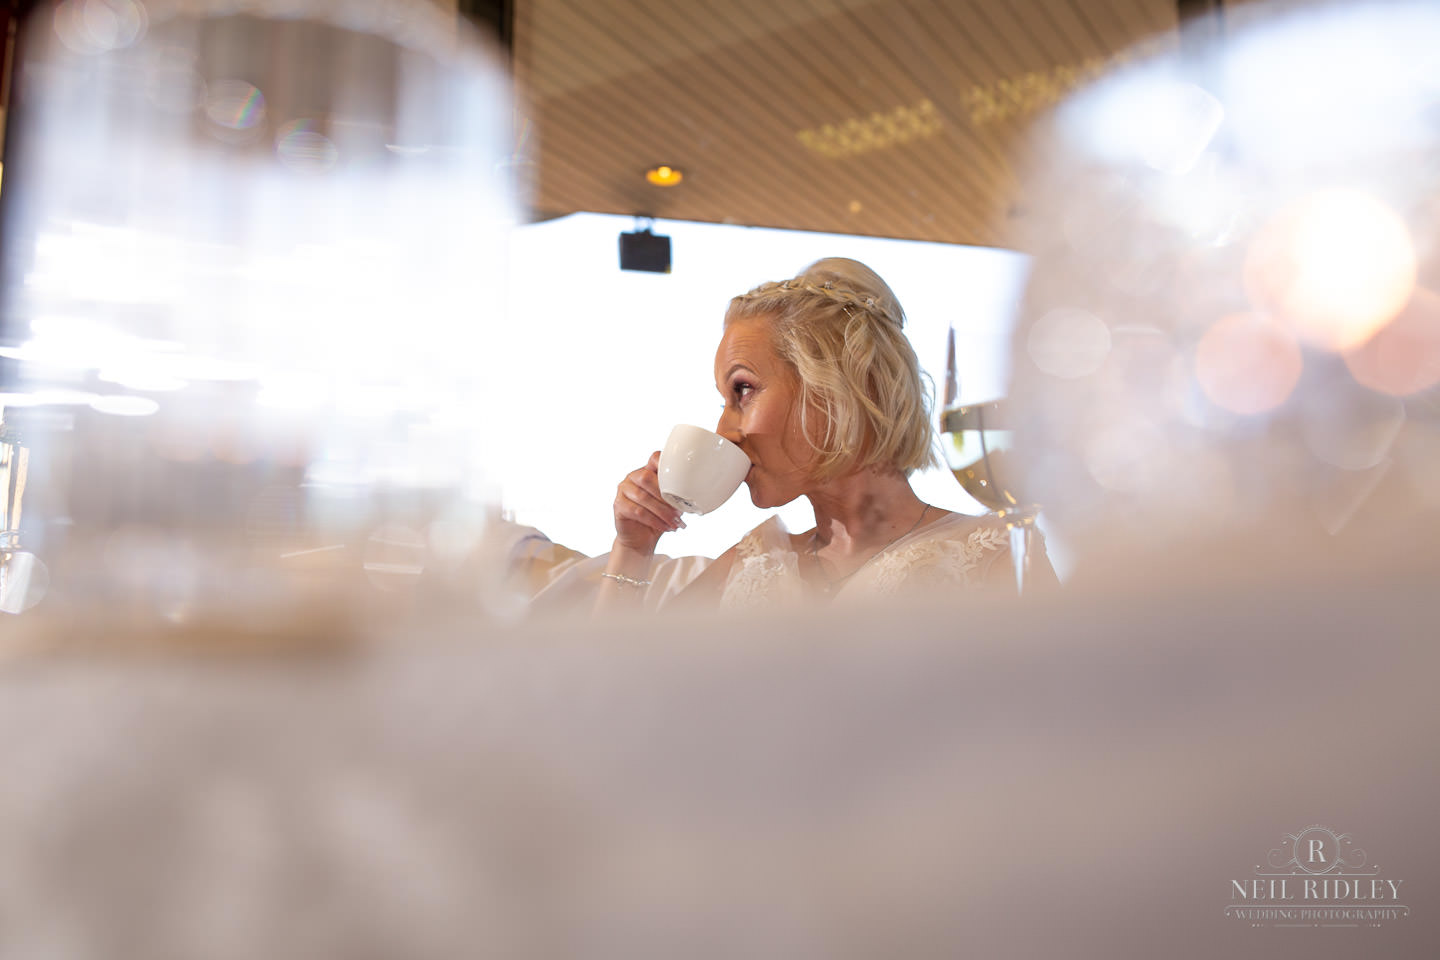 Bride drinks a cup of tea during her wedding breakfast at Maccdonald Portal Spa and Hotel